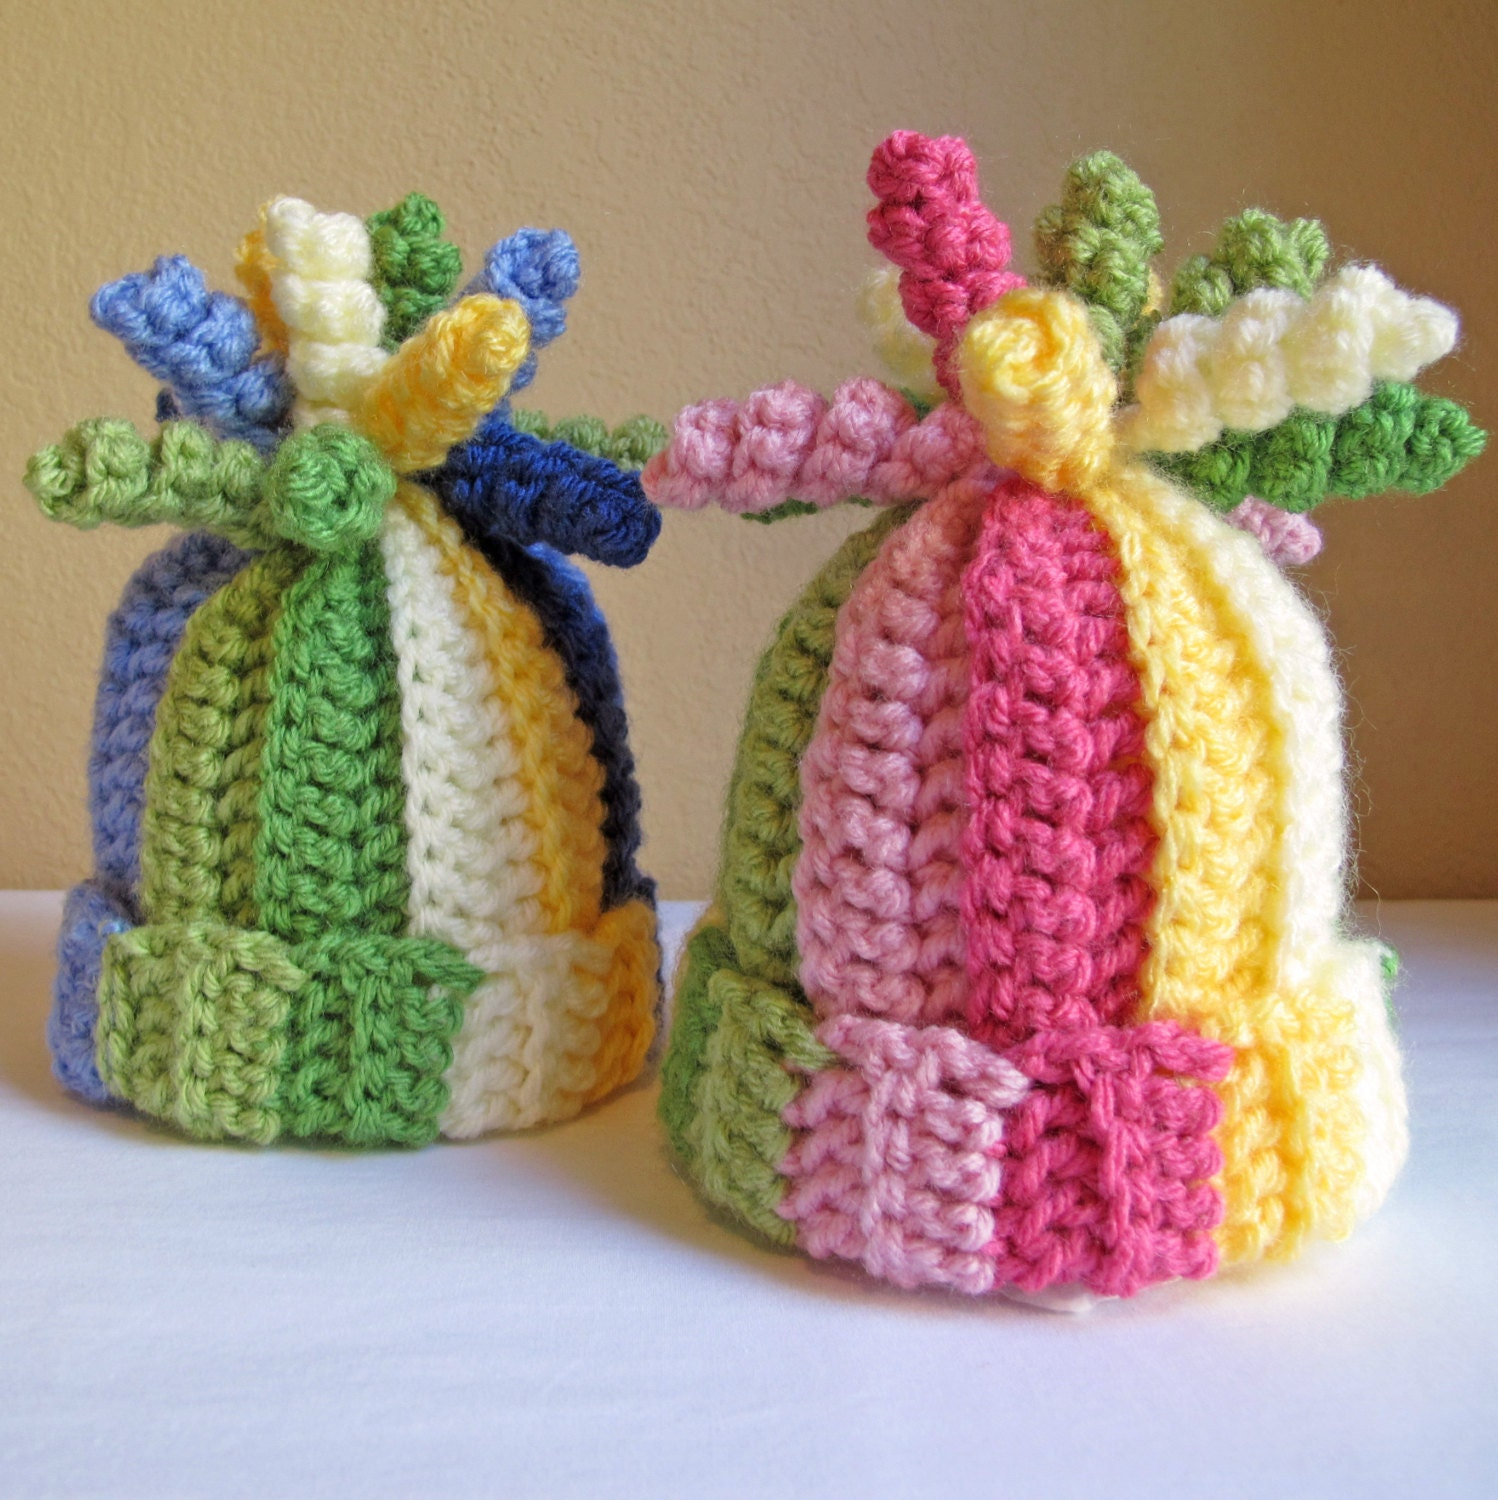 CROCHET PATTERN - Tutti Frutti - A striped corkscrew hat in 6 sizes (Infant - Adult S) - Instant PDF Download